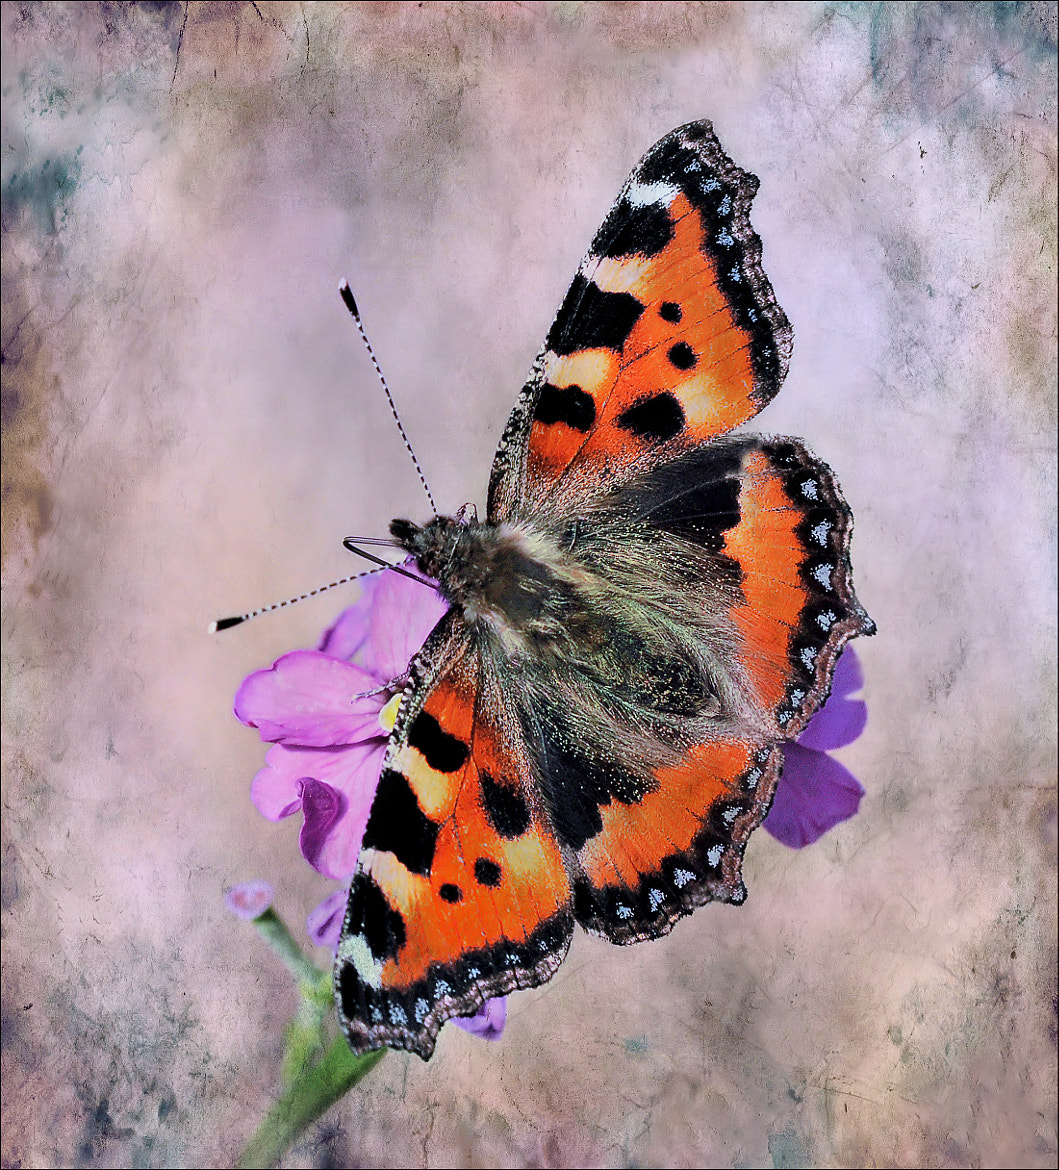 Photograph Small Tortoiseshell. by bri curtis on 500px